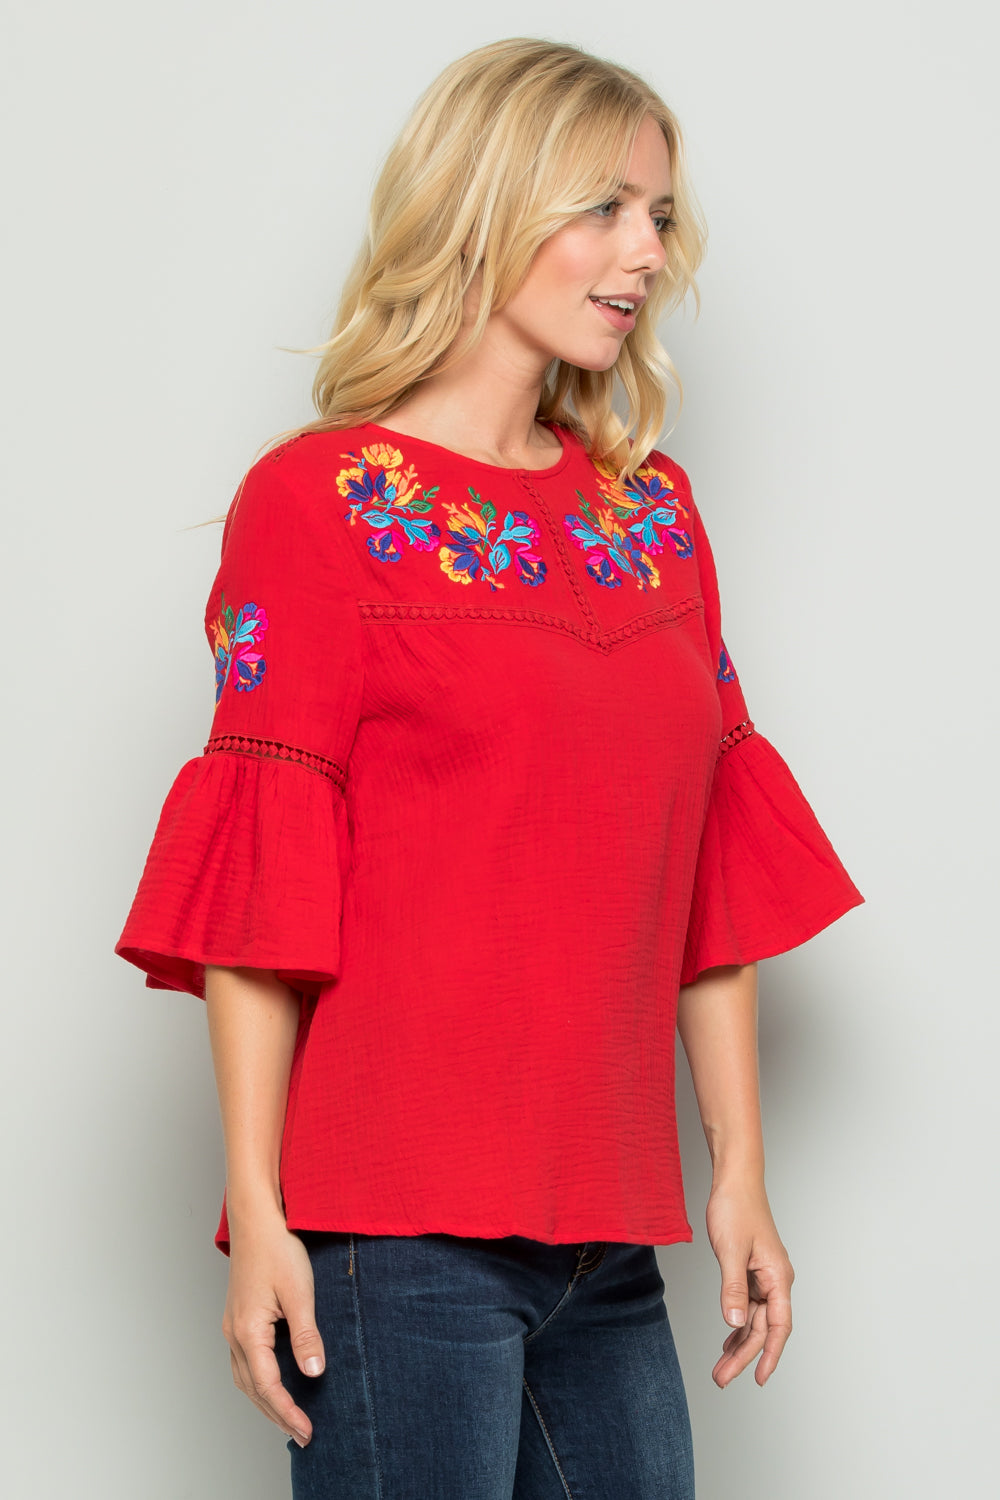 T2727 Floral Embroidered Top - RED